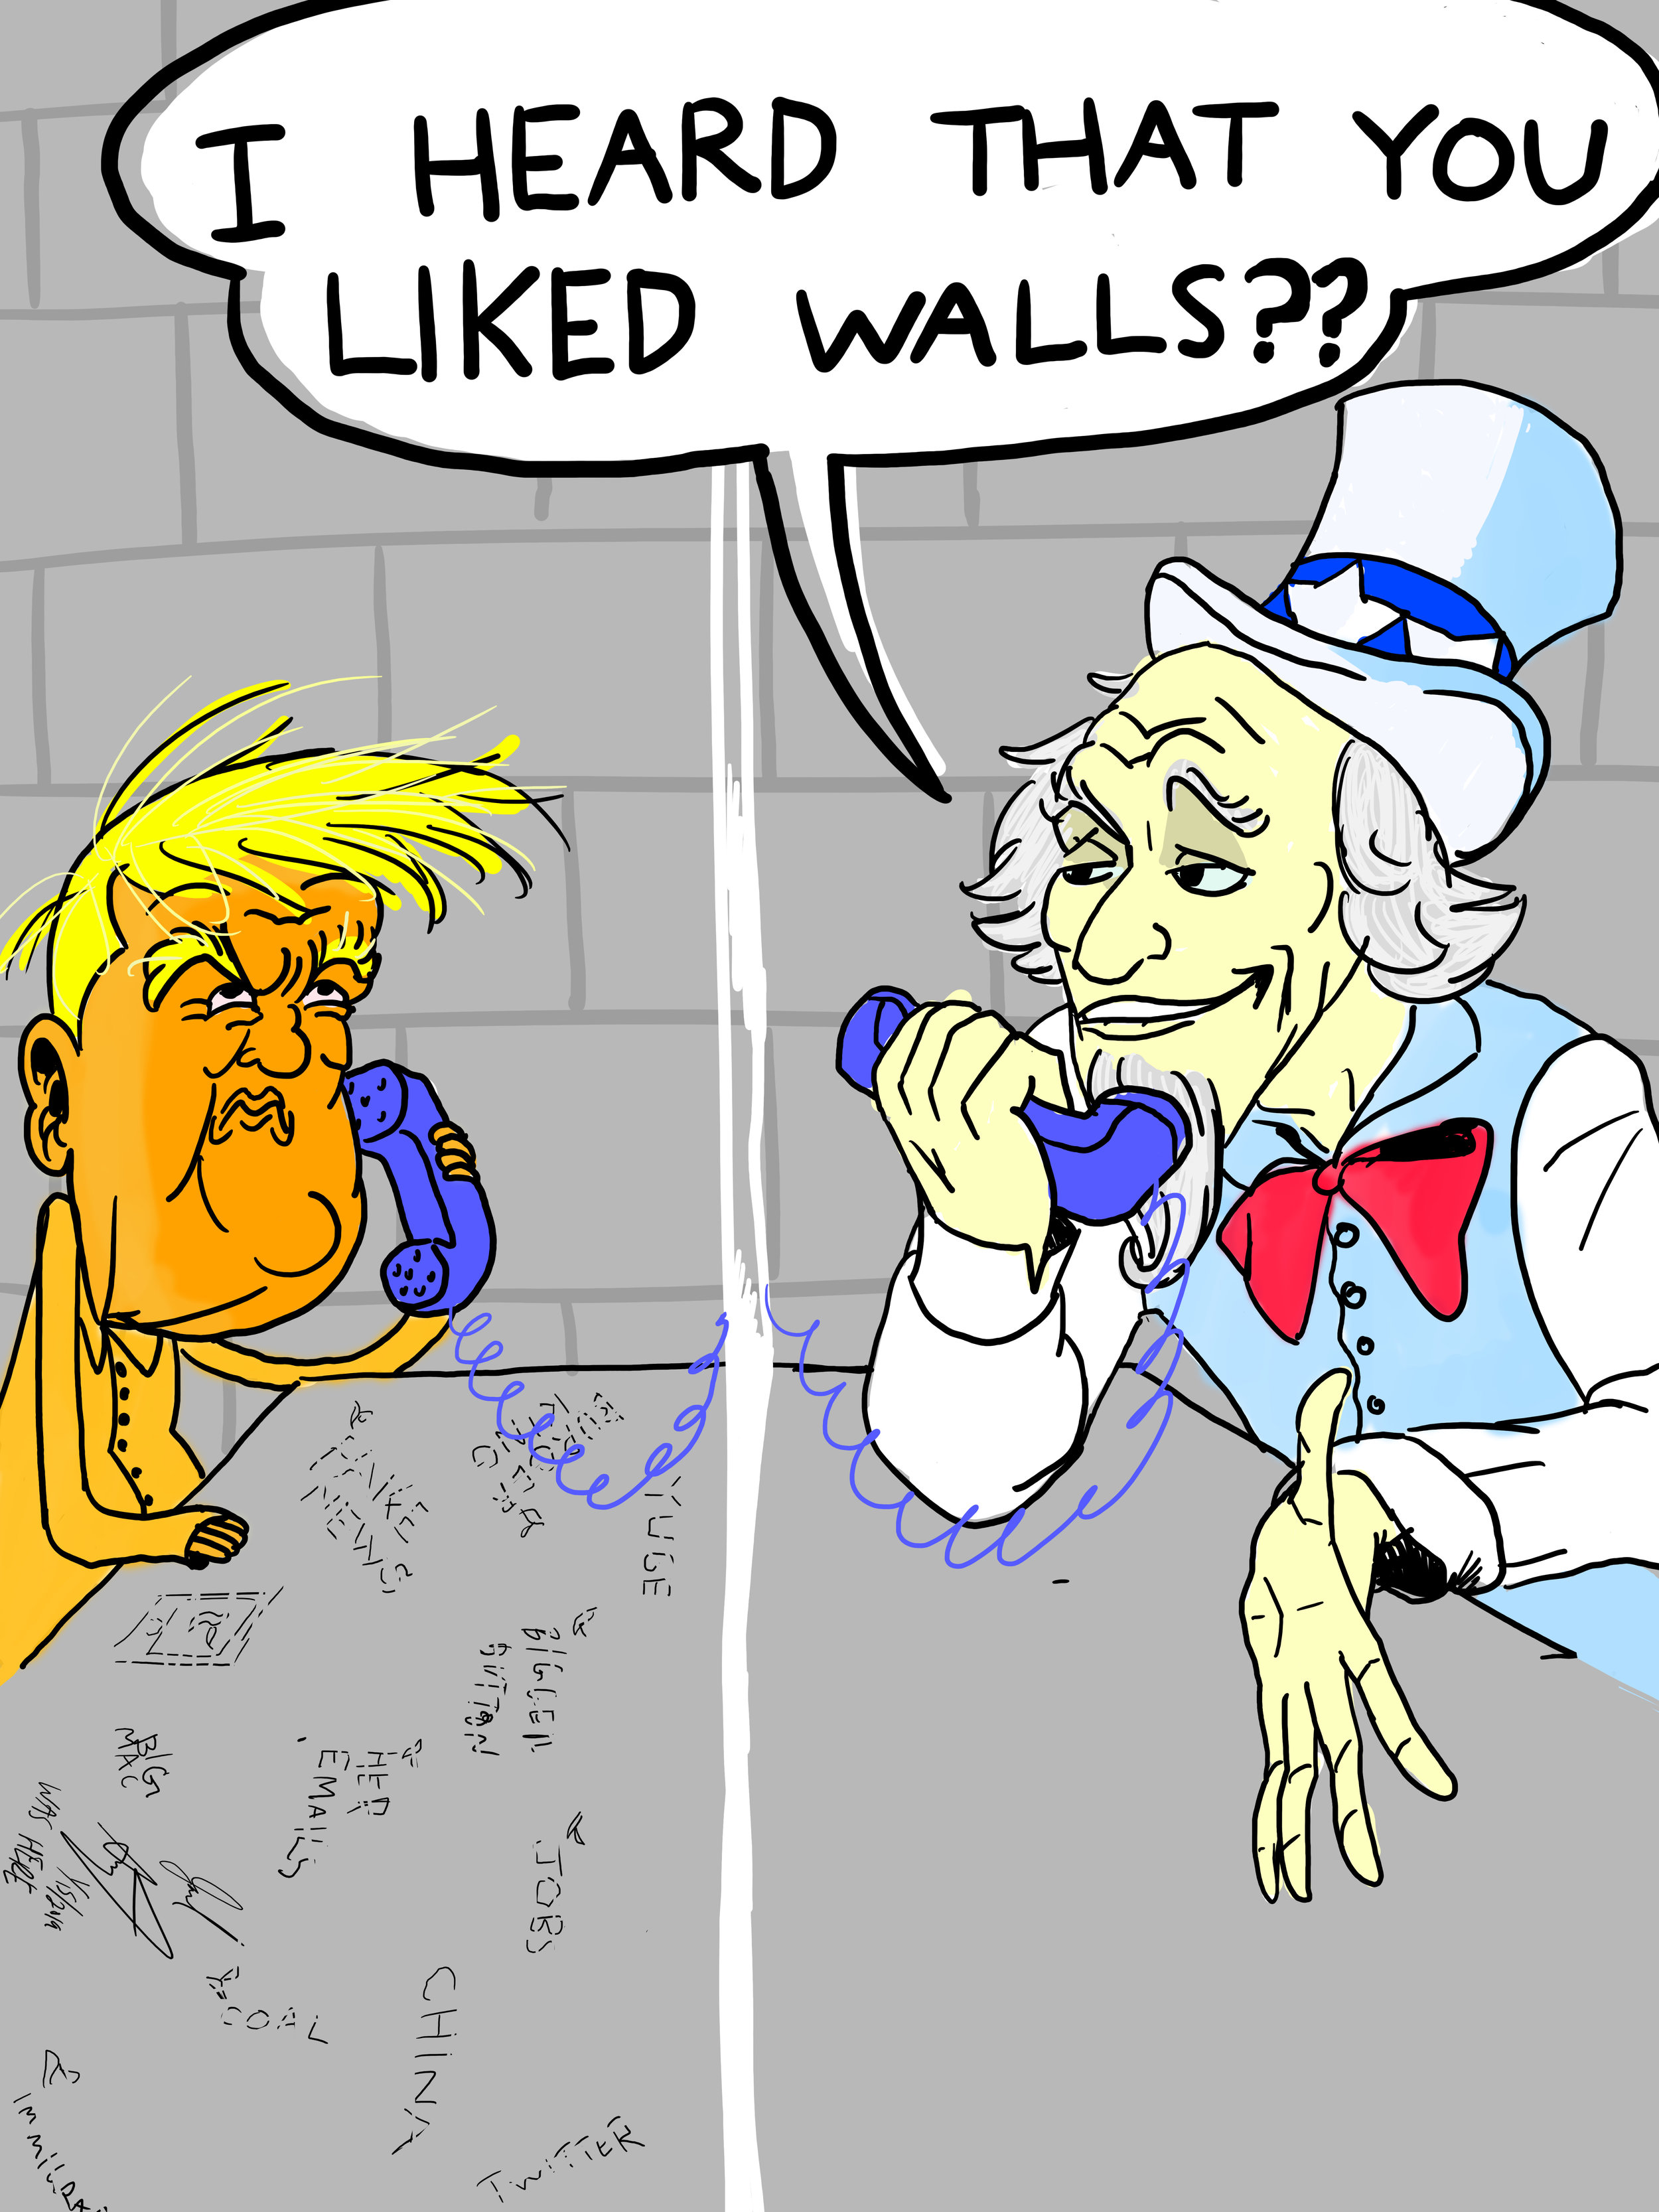 I Heard That You Liked Walls